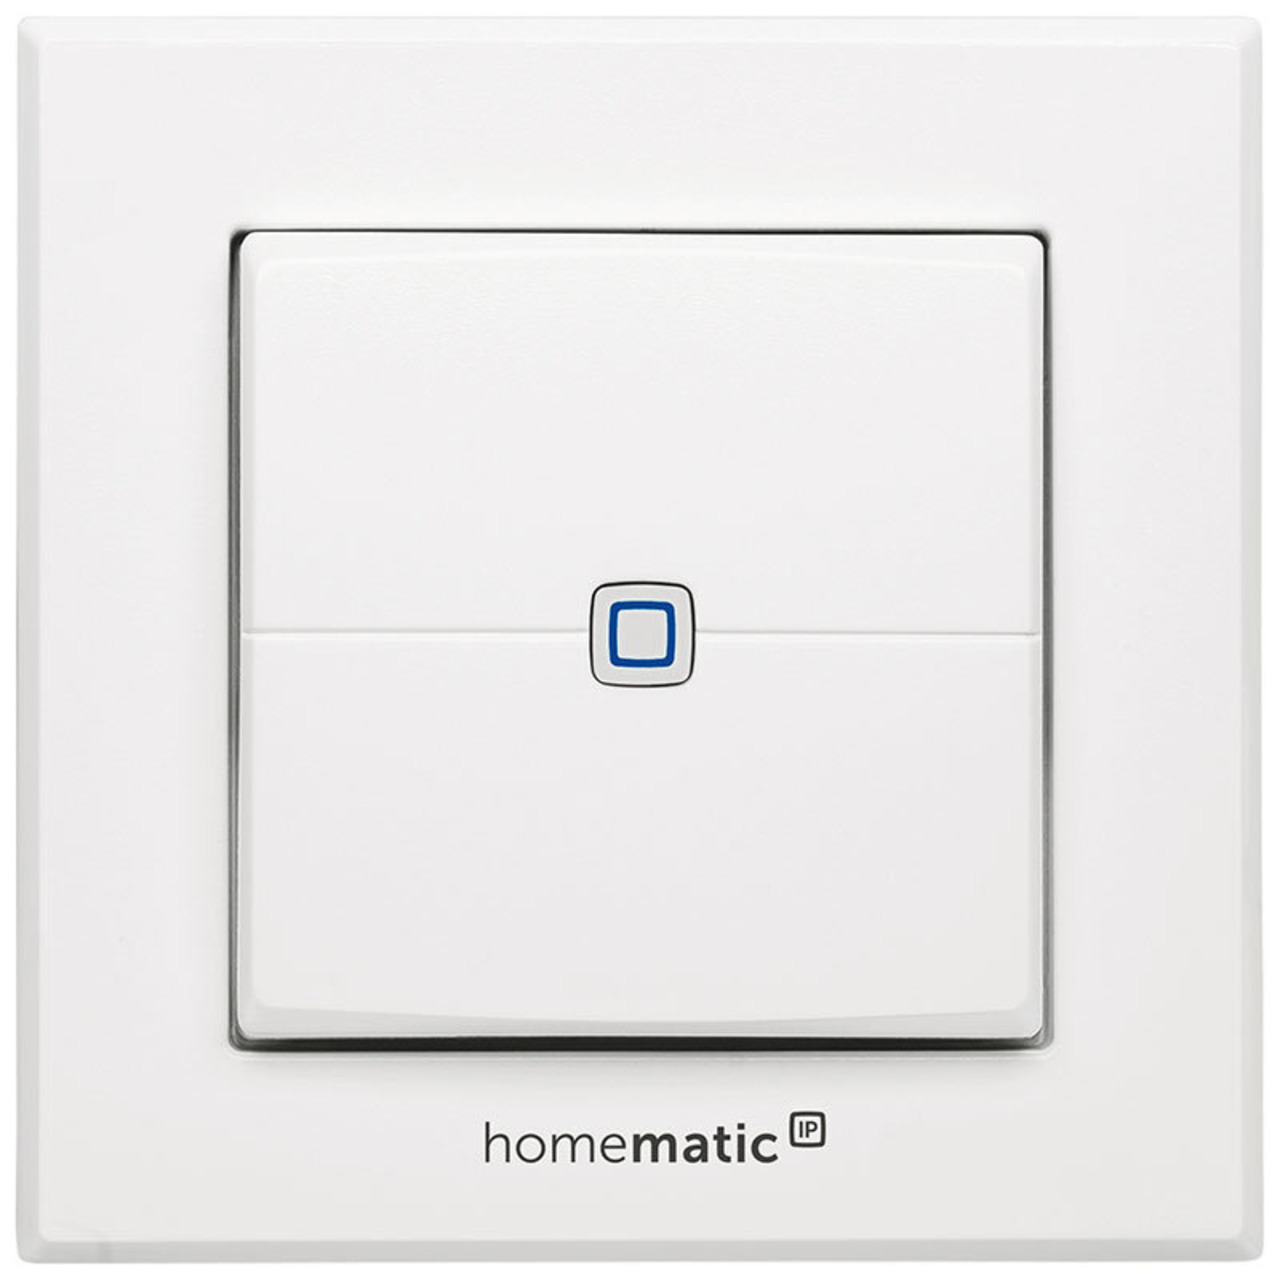 Homematic IP Wandtaster HMIP-WRC2- 2-fach für Smart Home - Hausautomation